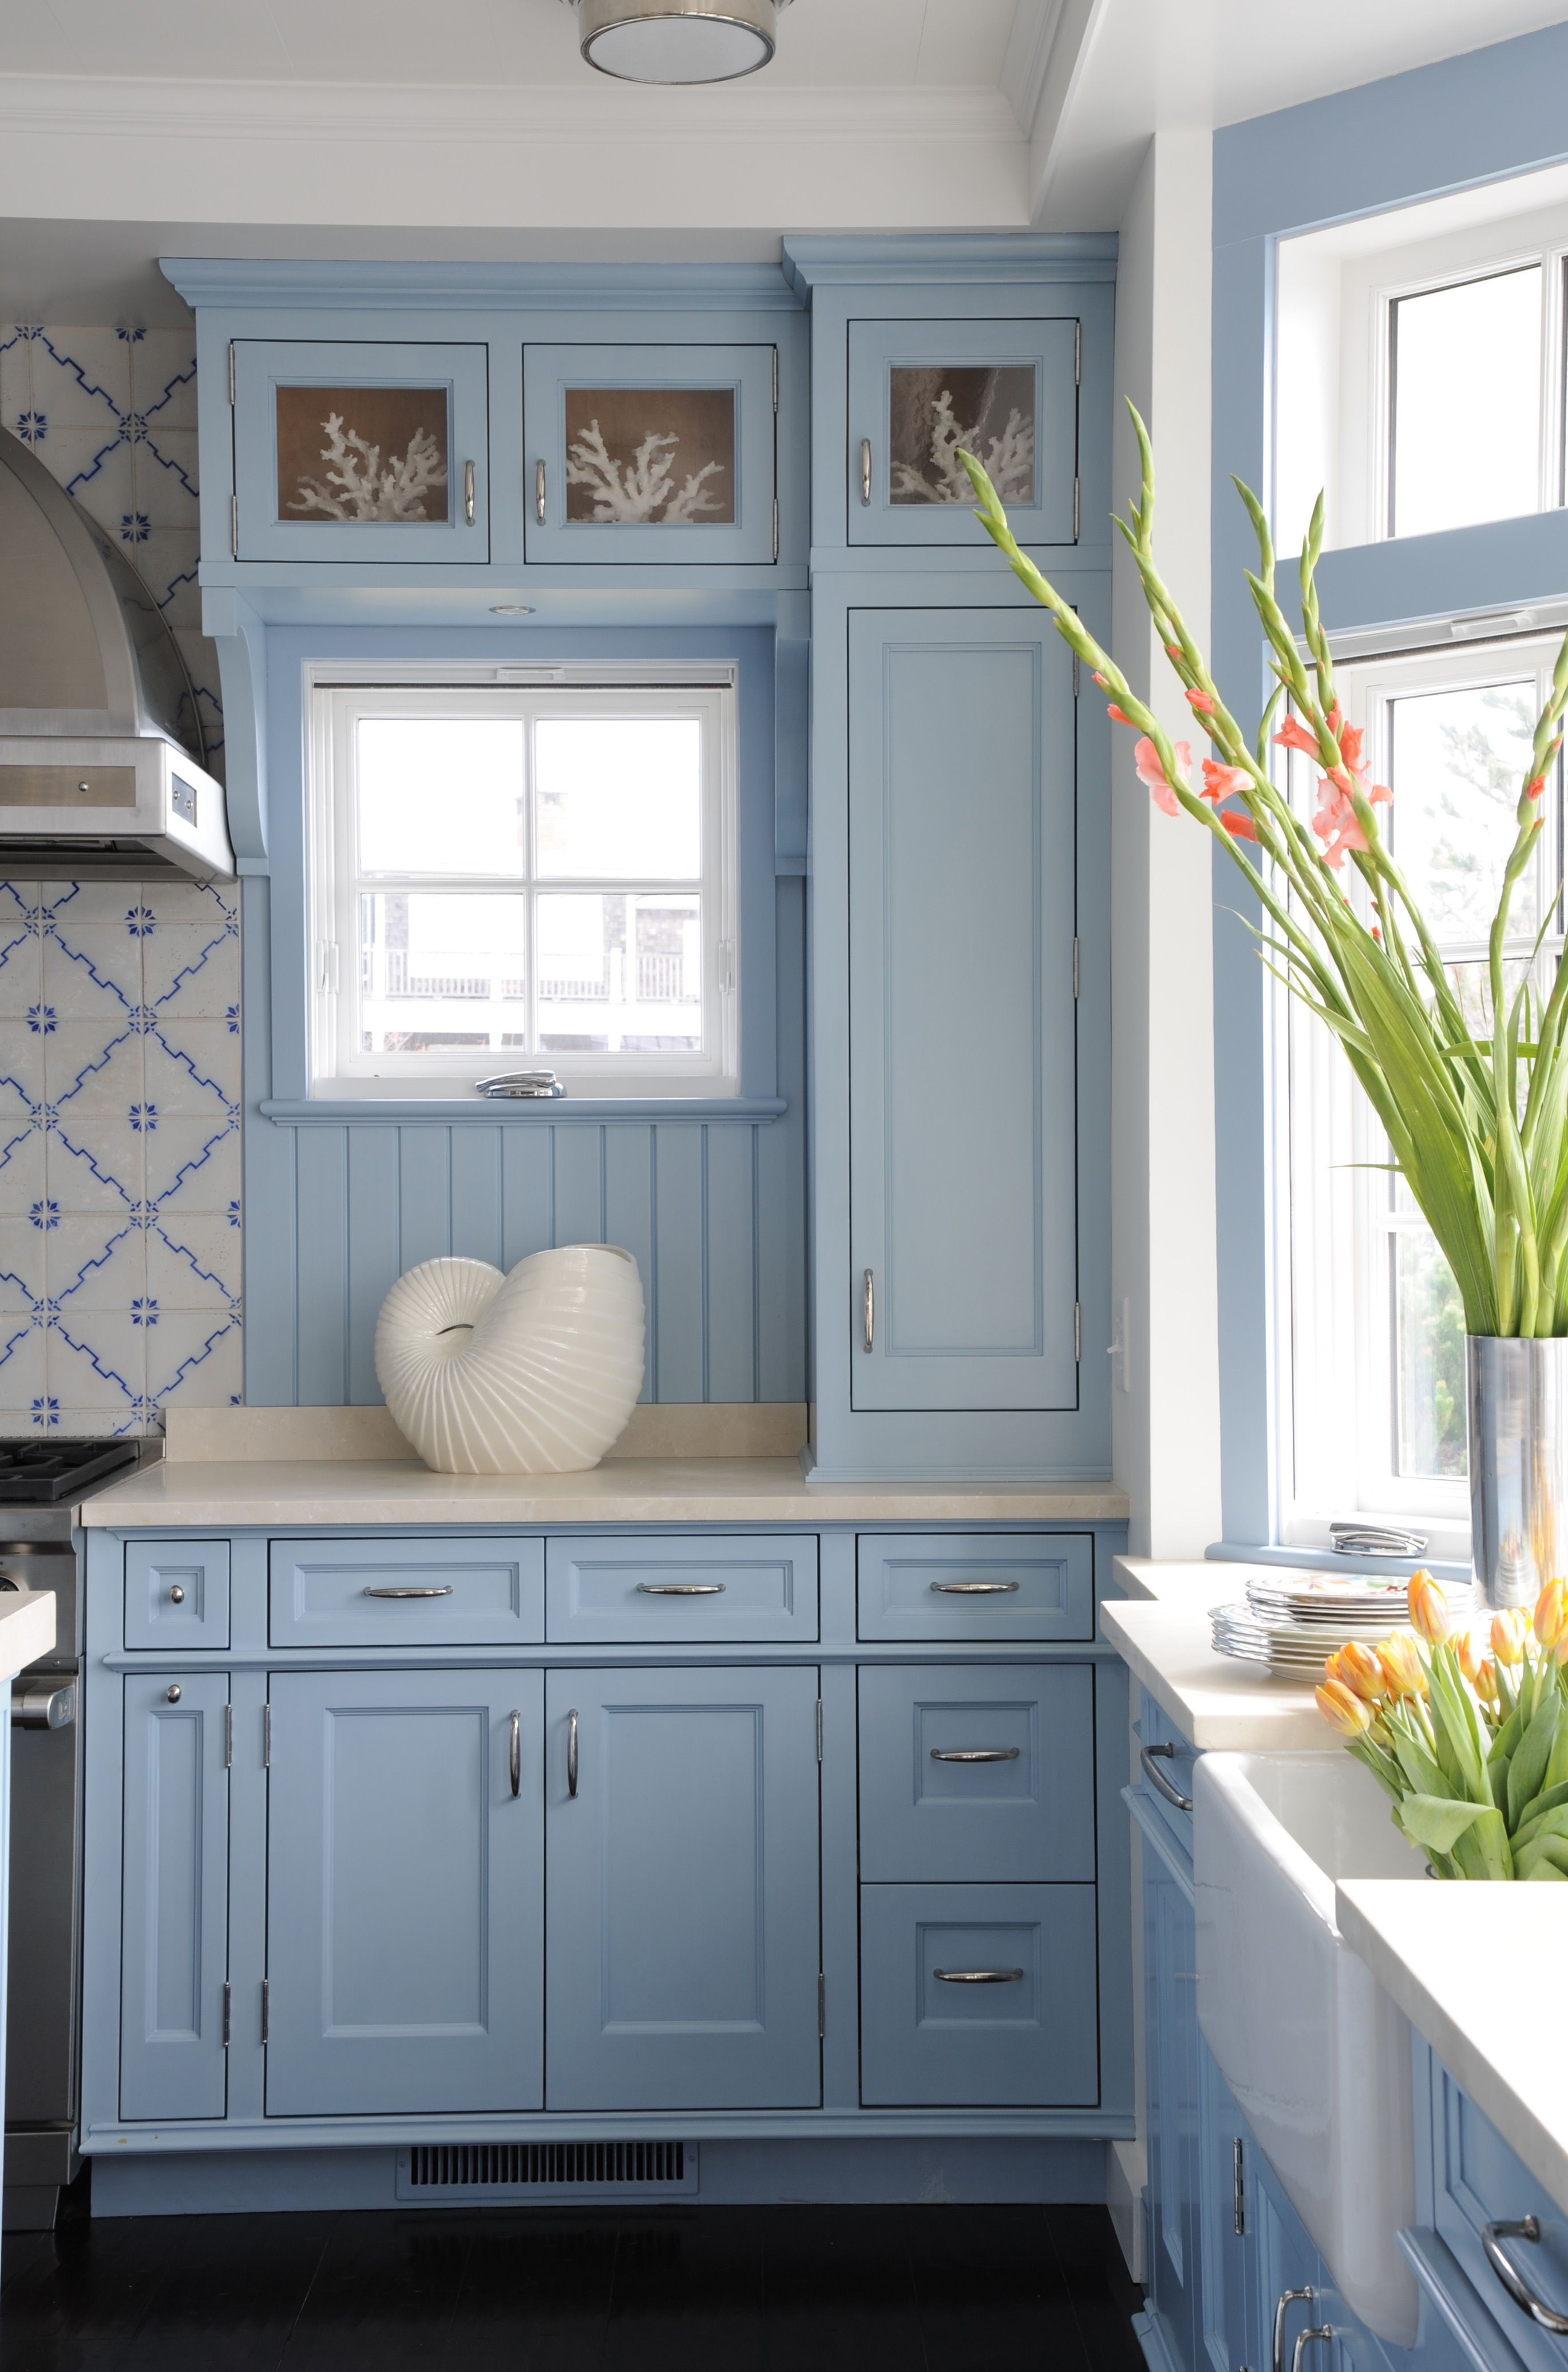 multi purpose beach inspired blue kitchen great for weekend parties by sarah blank design on kitchen decor blue id=78953